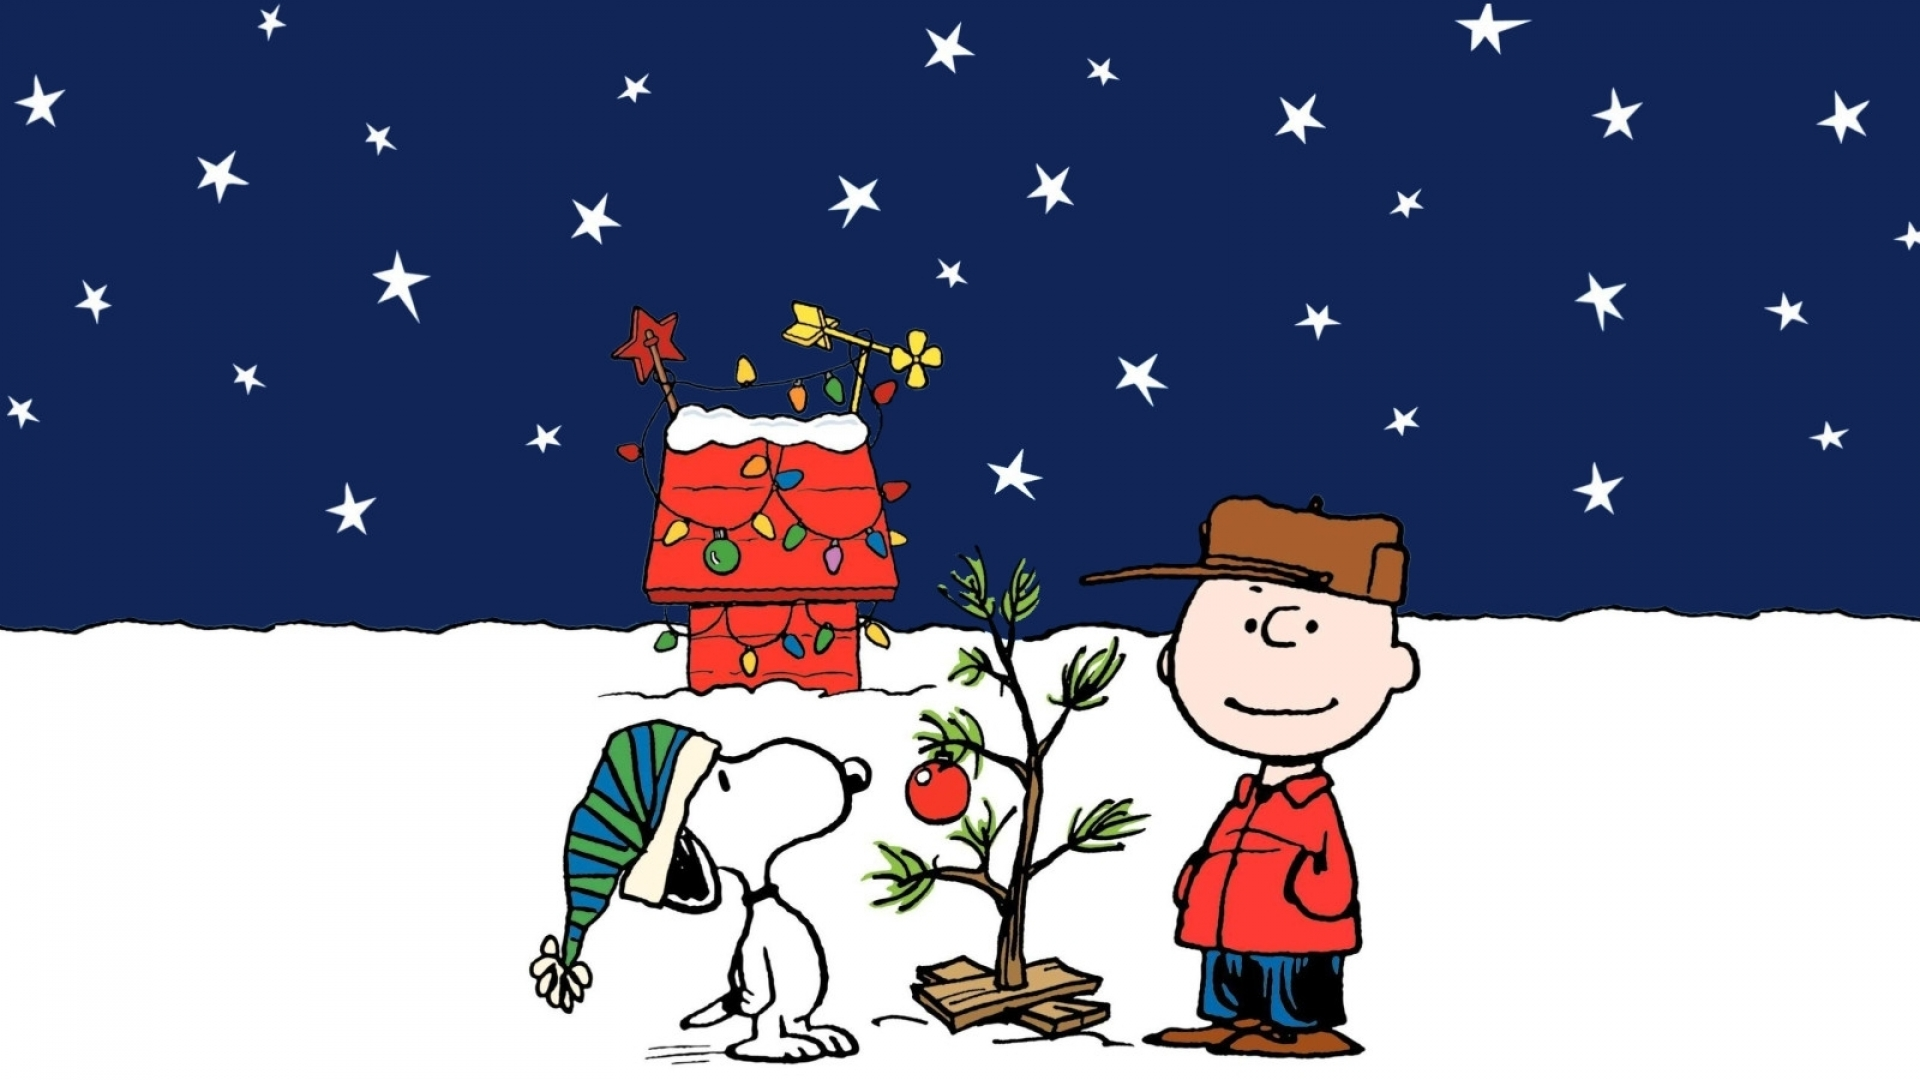 Peanuts Christmas Iphone Wallpaper Charlie brown peanuts 1920x1080